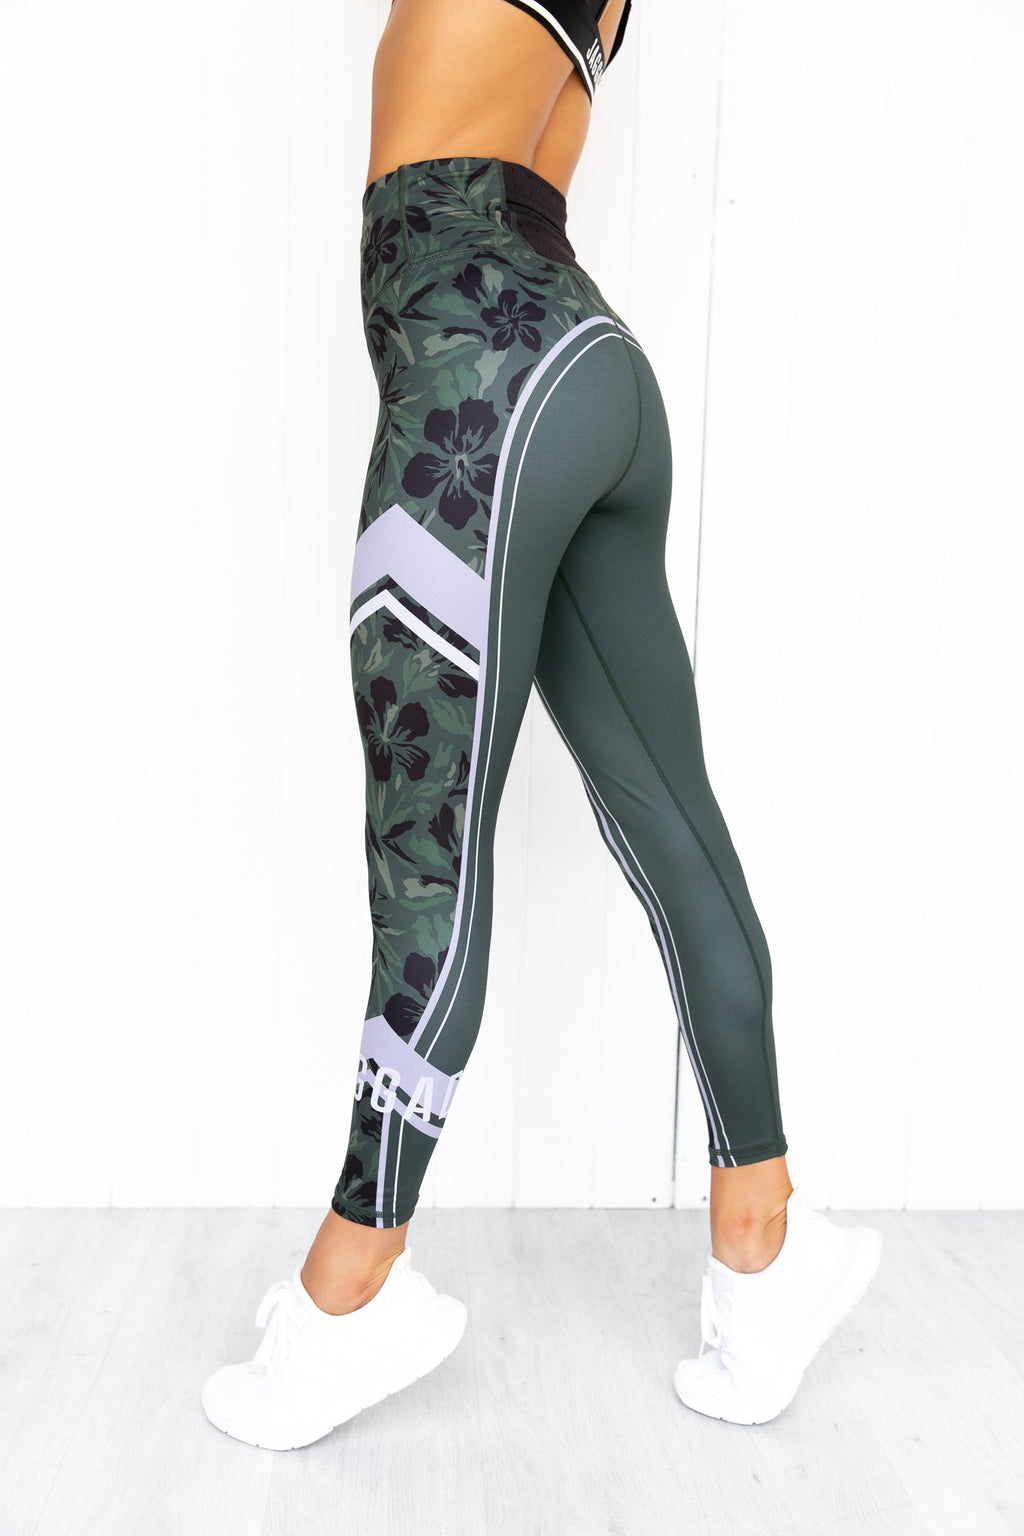 Hawaii 7/8 Legging - PURE DASH